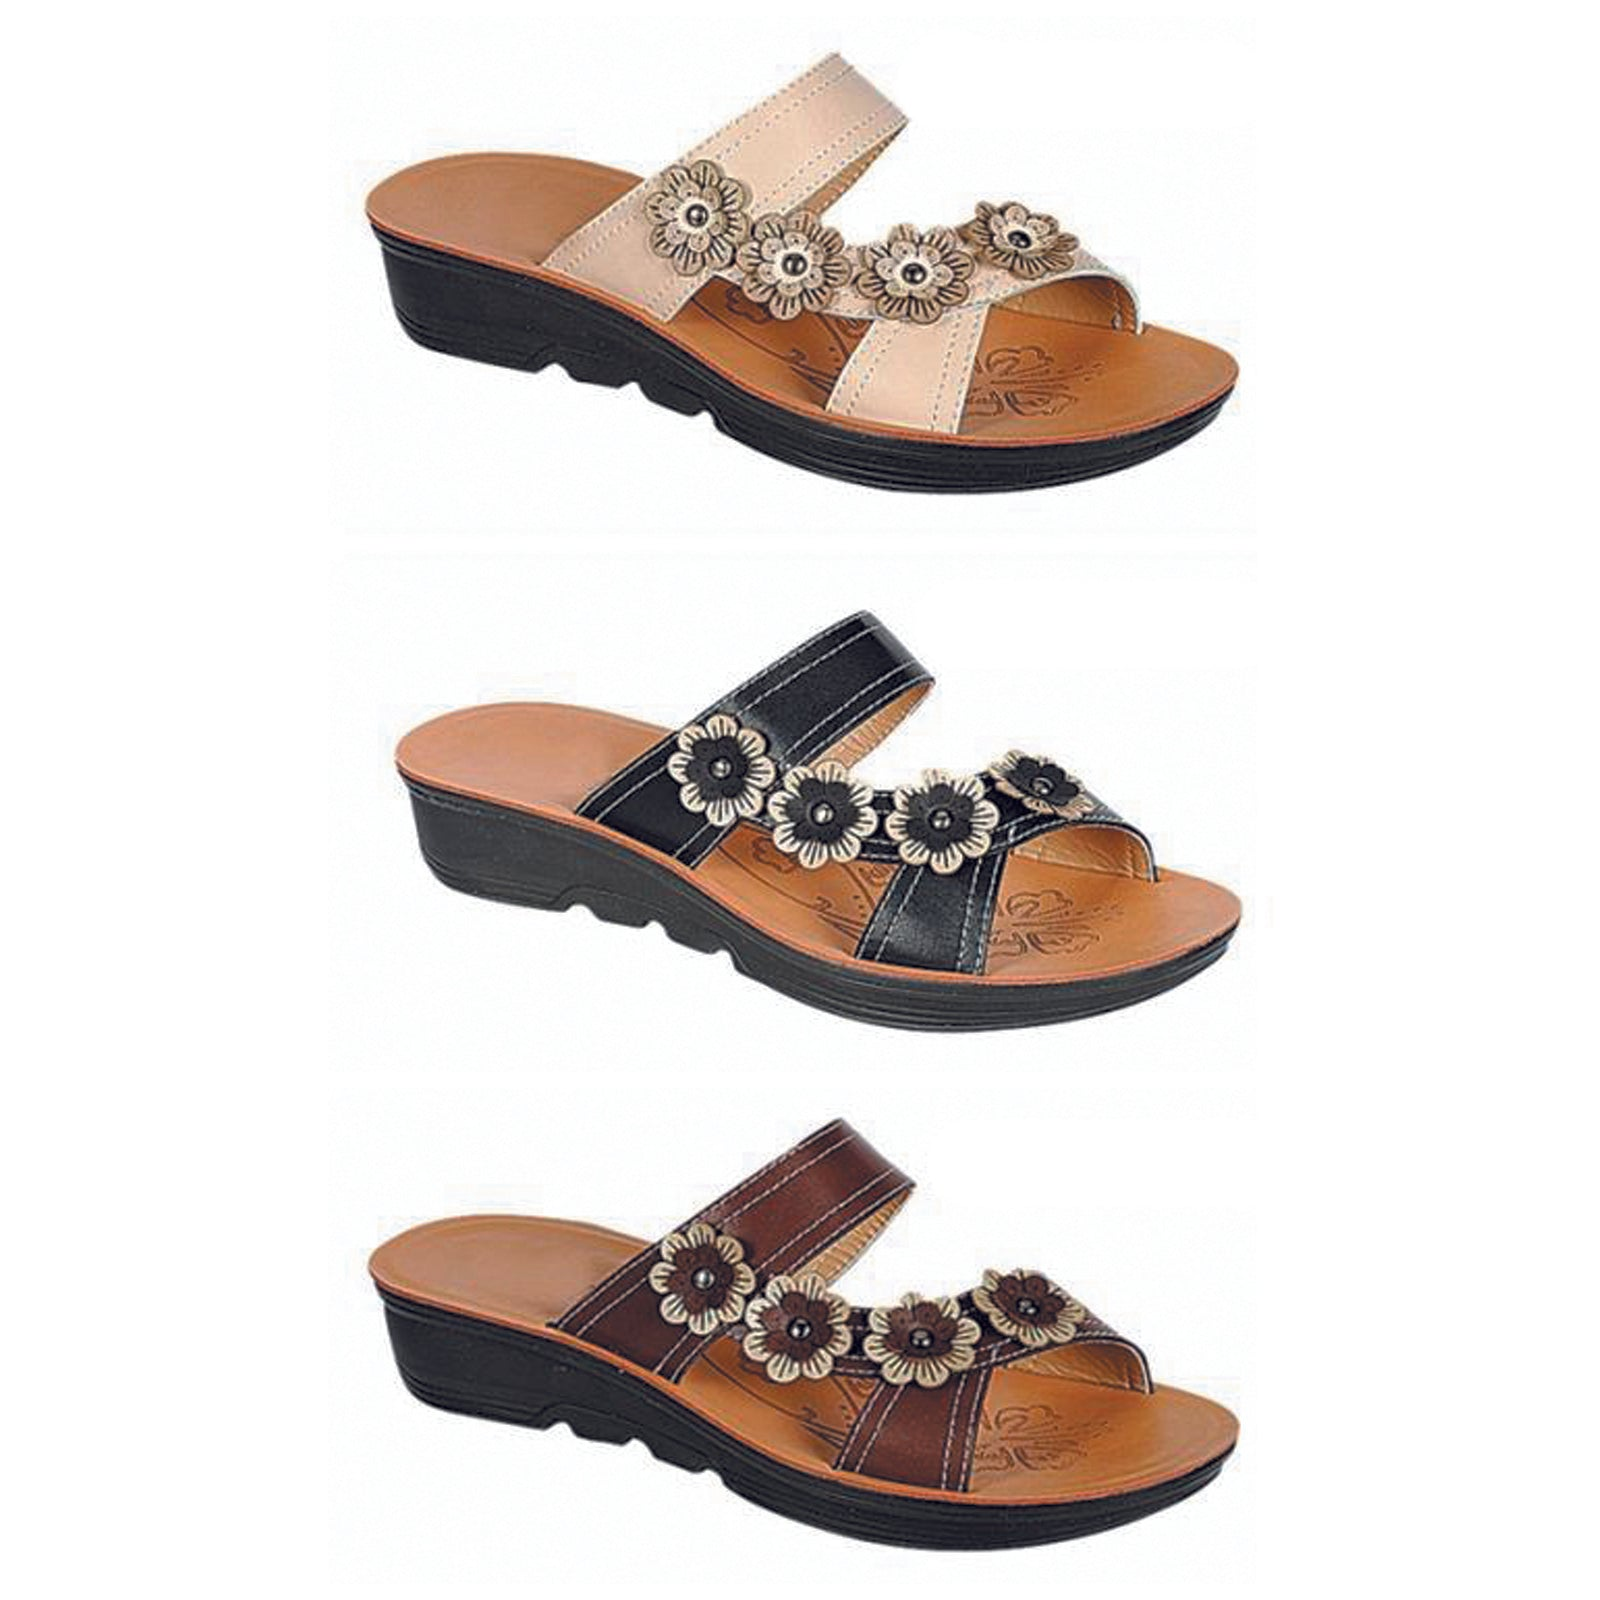 Wholesale Women's Shoes Open Toe Flower Double Strap Dennise Sandals NCPC5